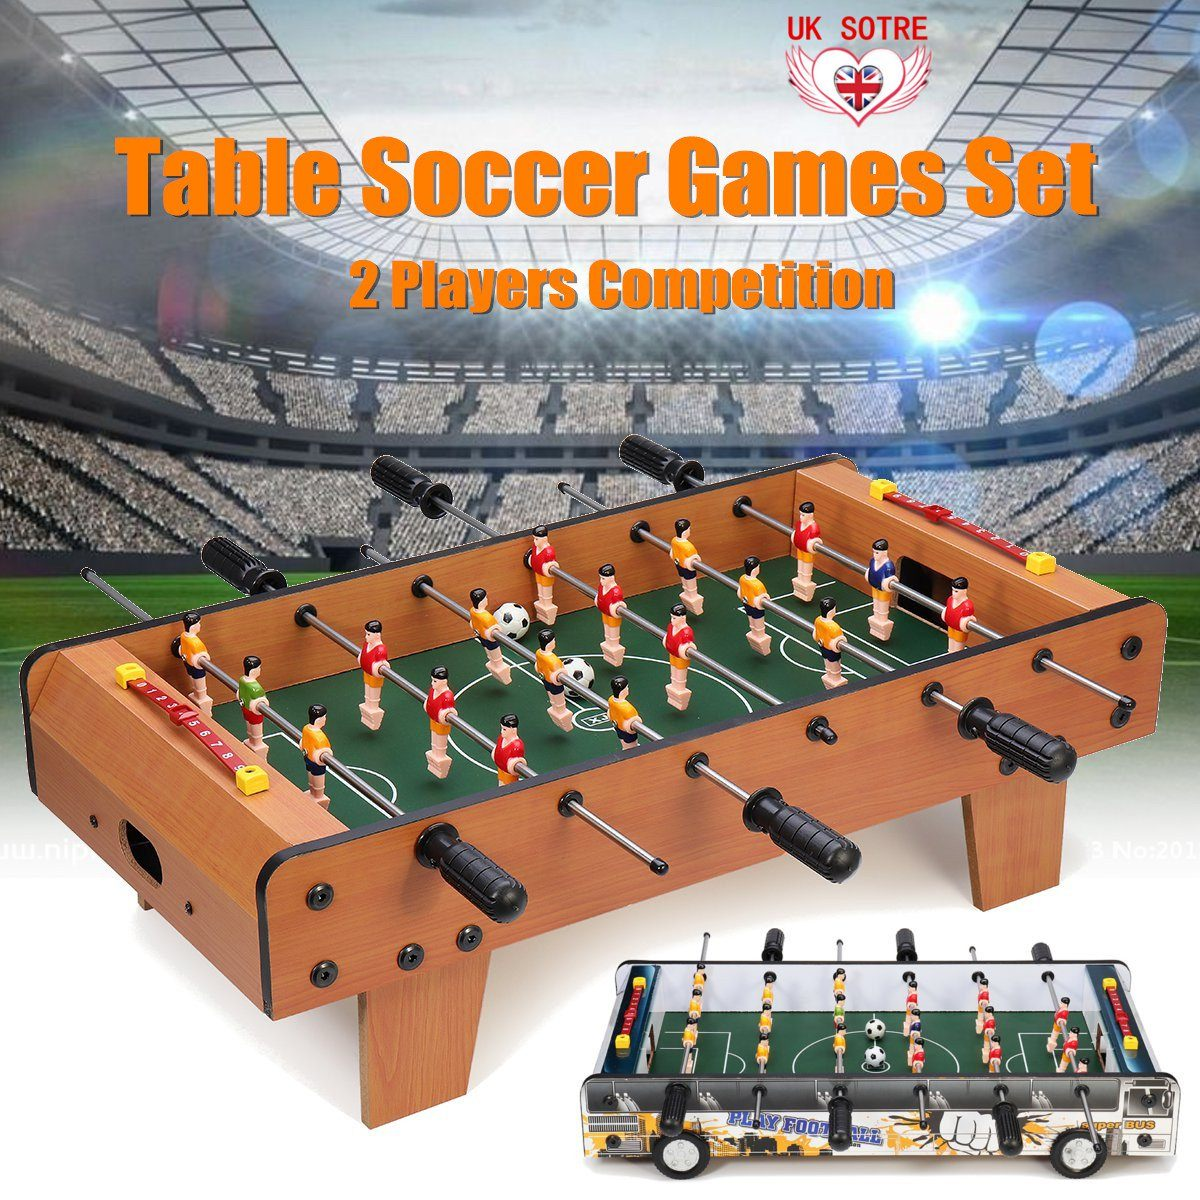 61x31x20cm MagiDeal Funny Table Foosball Soccer Games Table Top Sports Home Family Party Leisure Table Game Kids Toys Gifts61x31x20cm MagiDeal Funny Table Foosball Soccer Games Table Top Sports Home Family Party Leisure Table Game Kids Toys Gifts